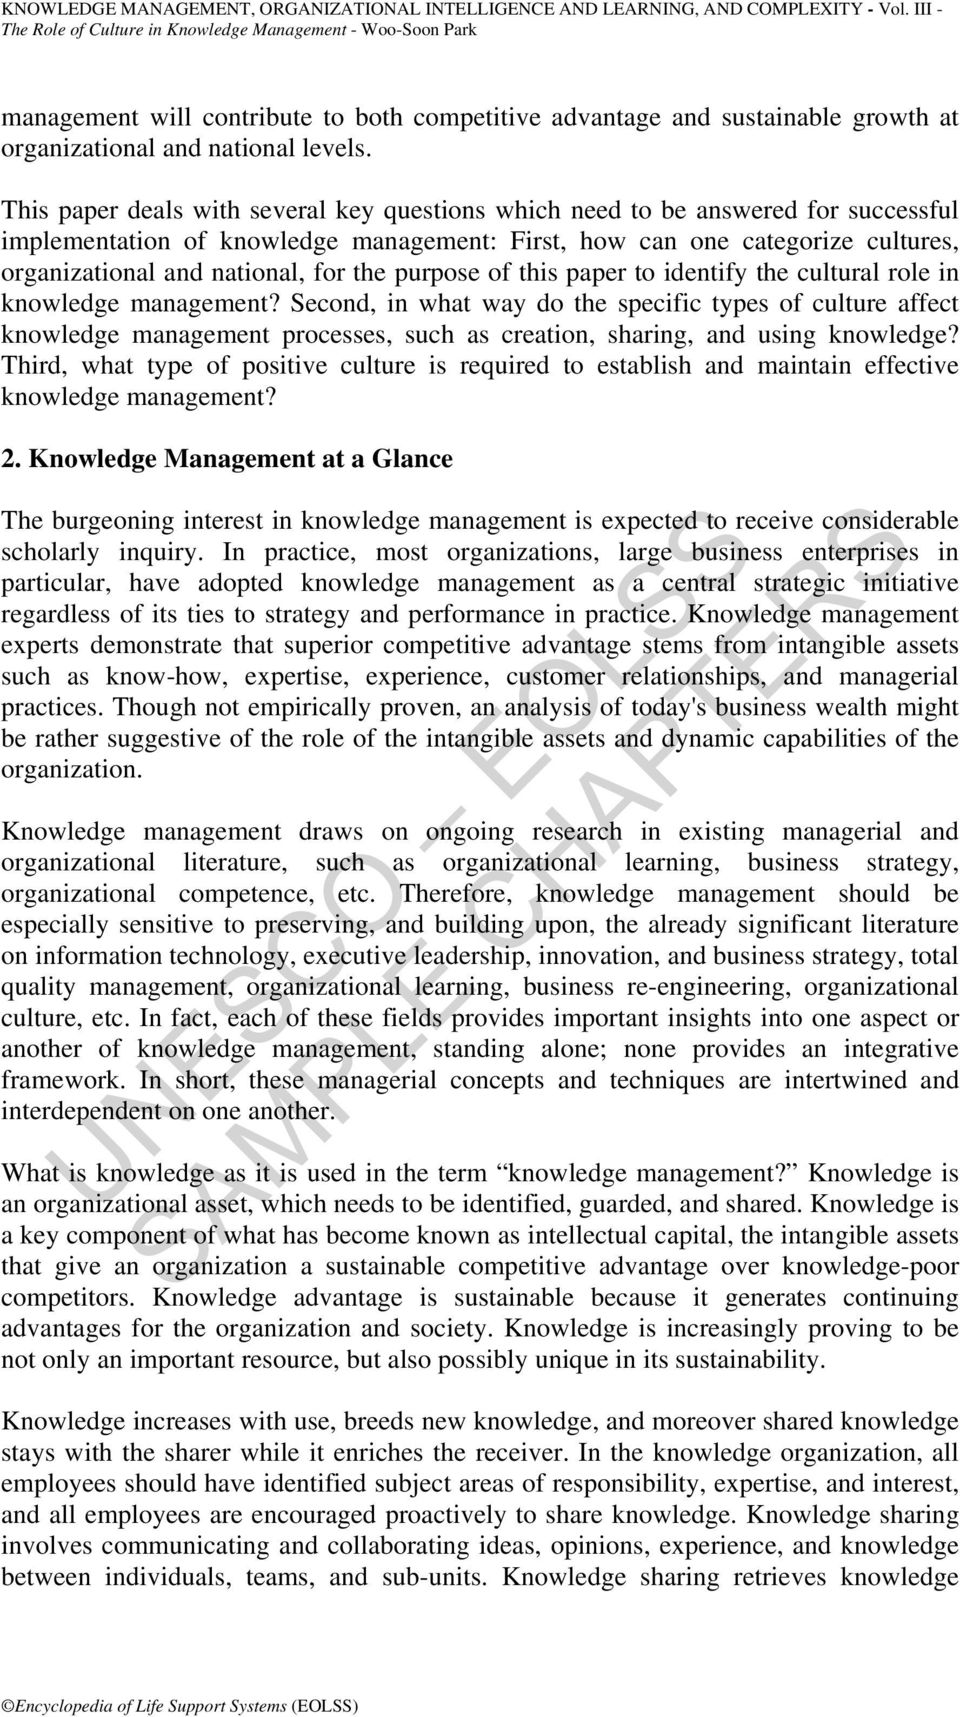 the purpose of this paper to identify the cultural role in knowledge management?